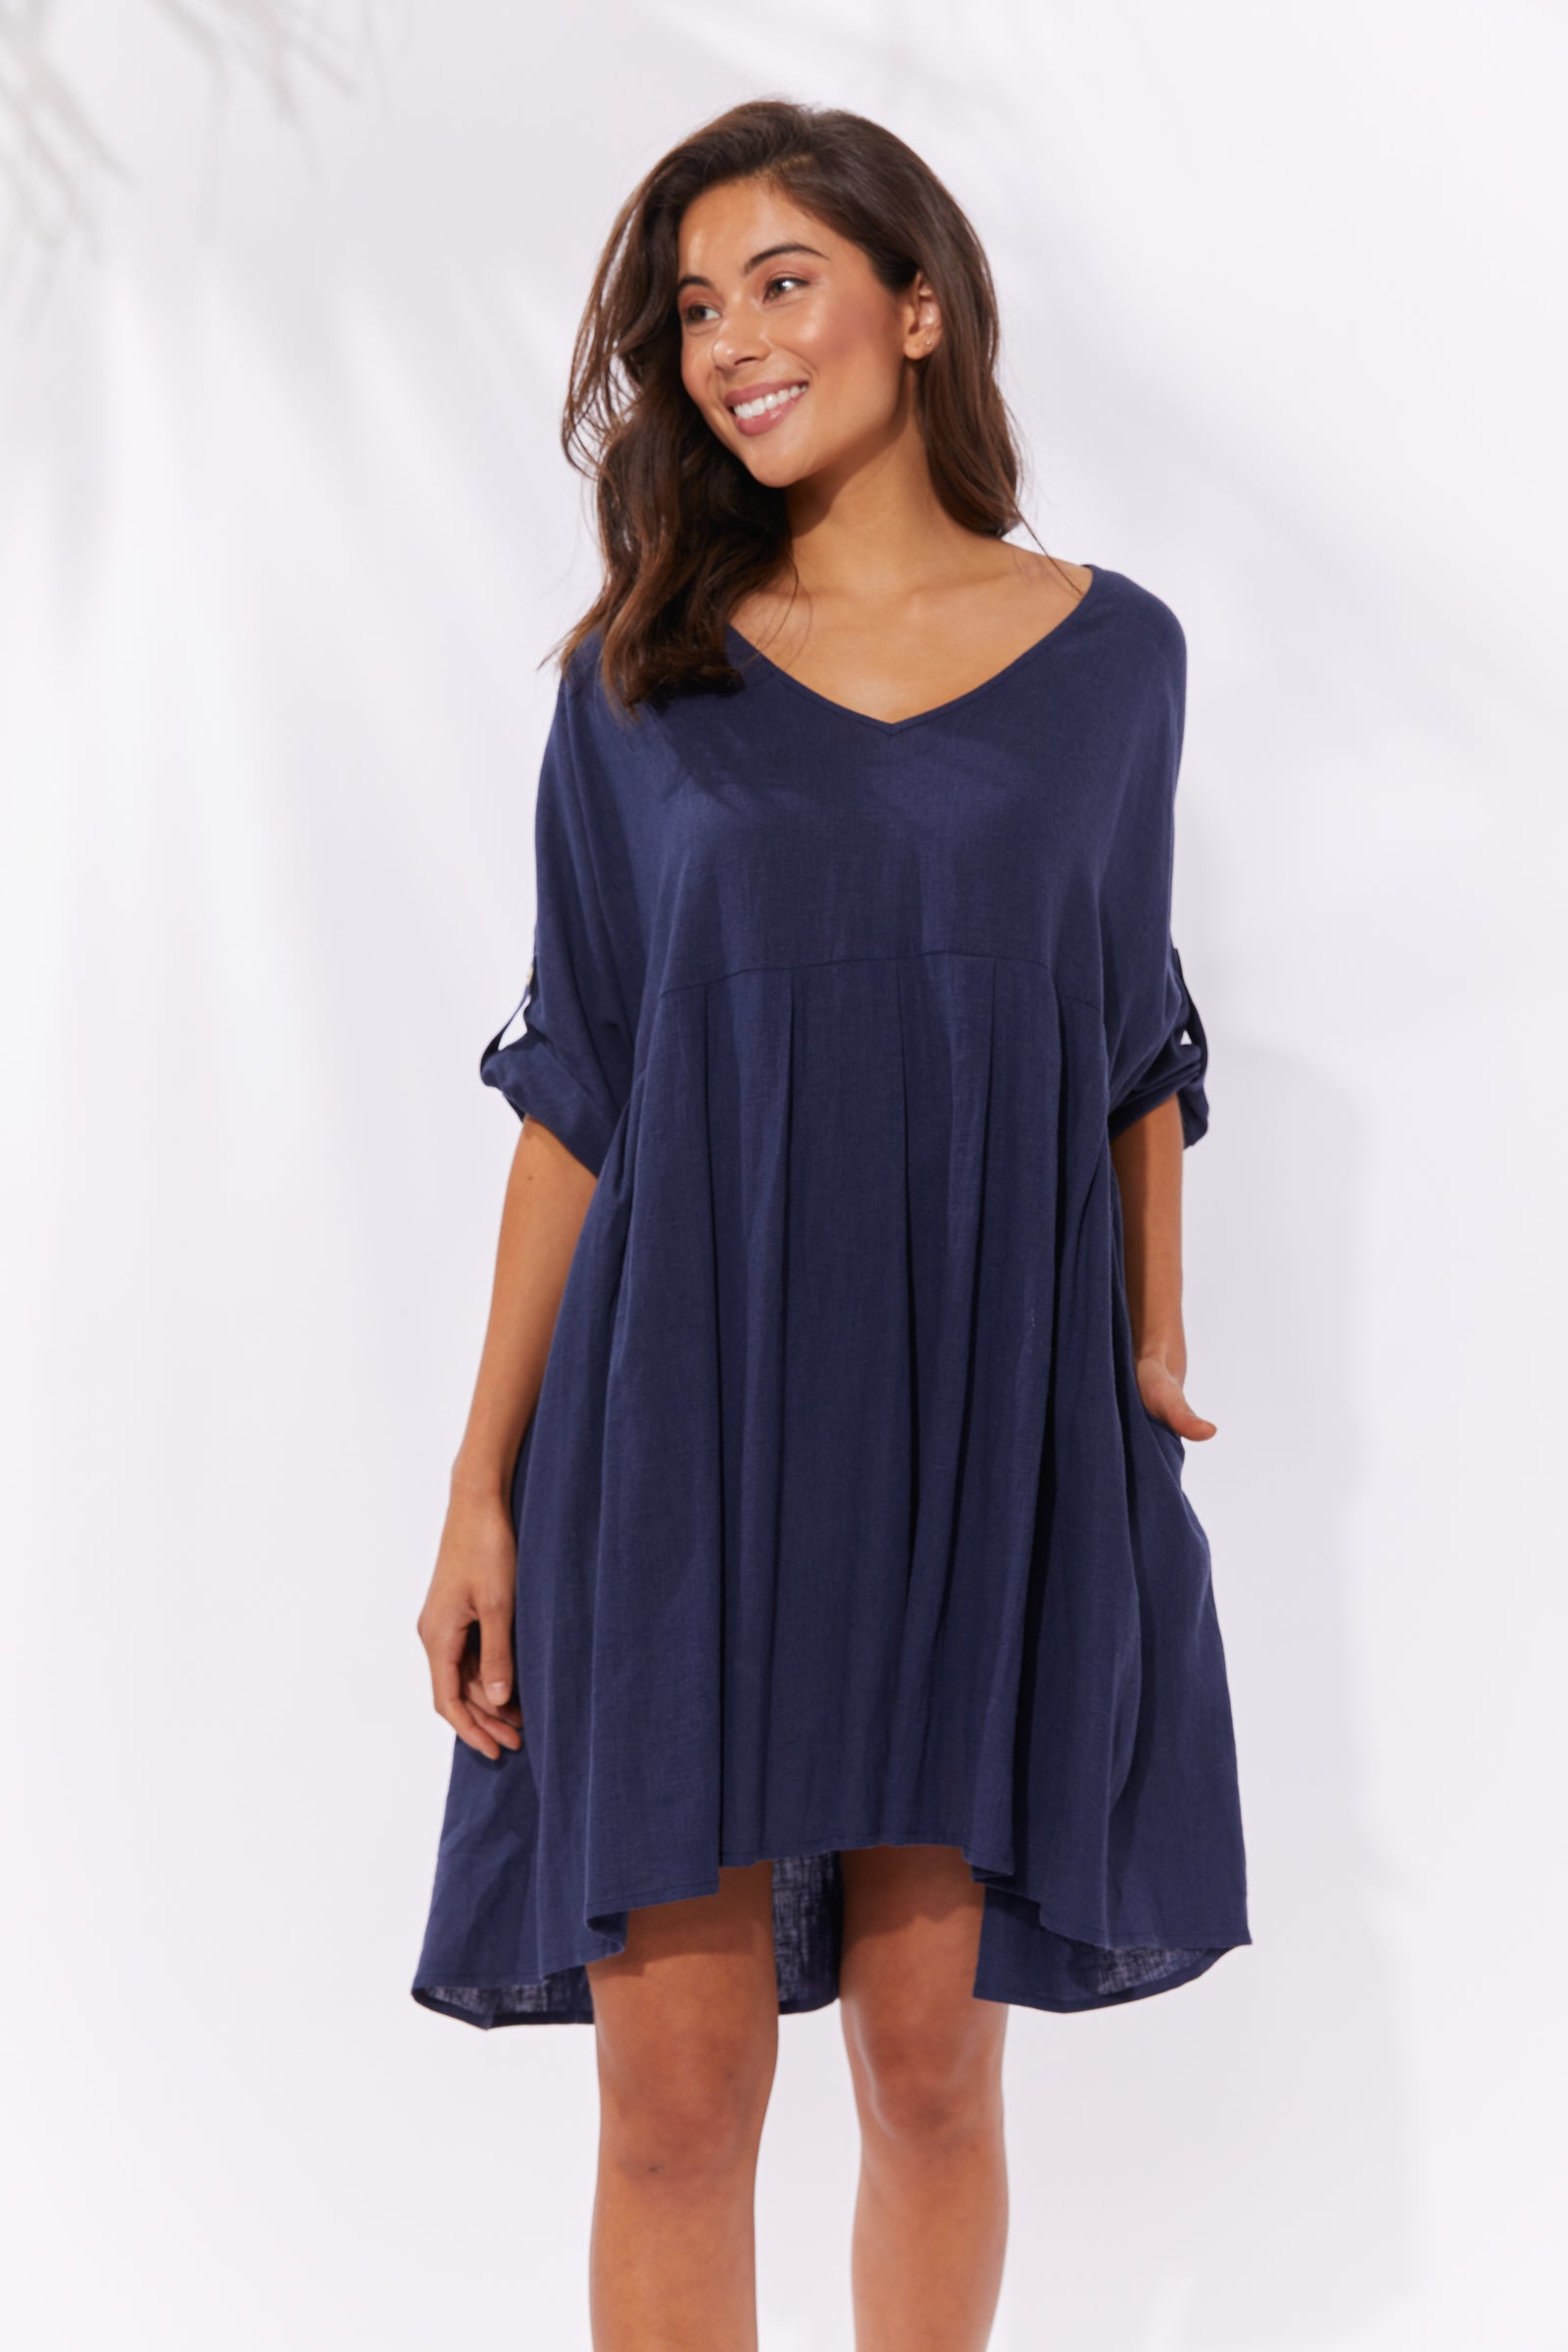 Cuban V Top/Dress - Denim - The Haven Co